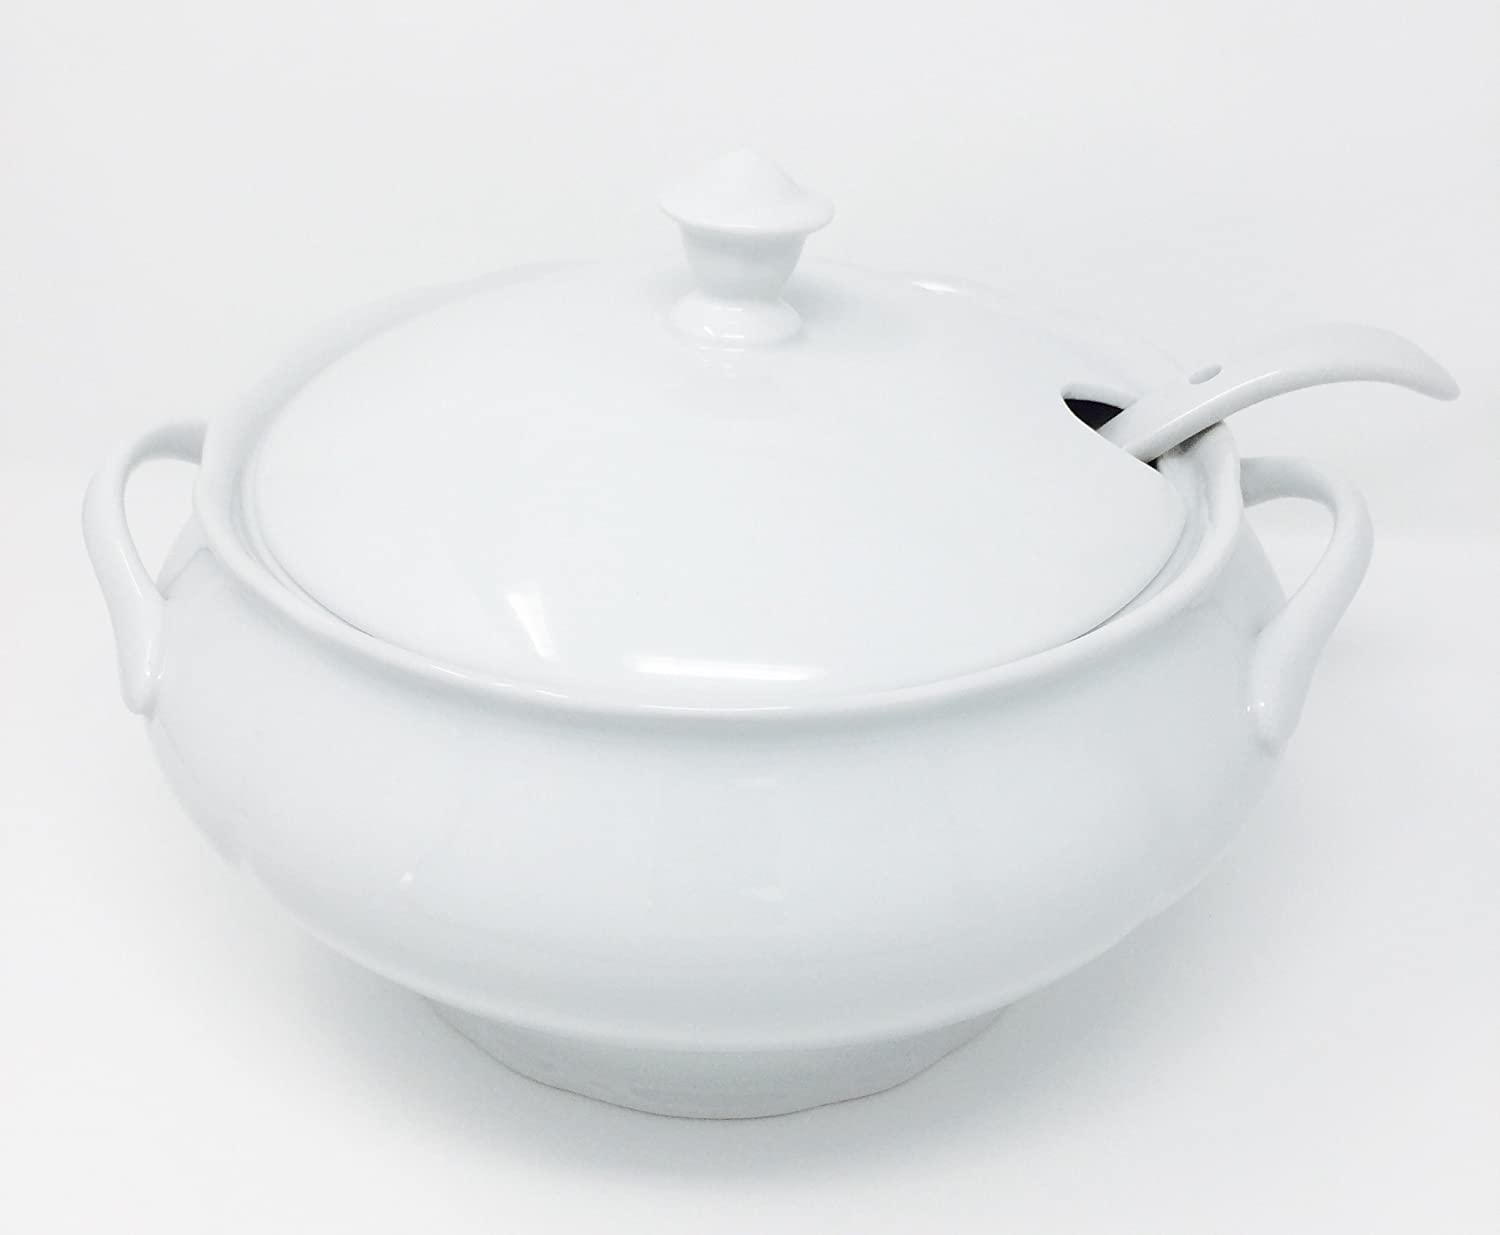 HIC 64-ounce Porcelain Soup Tureen with Ladle Harold Import Company Inc. NT310